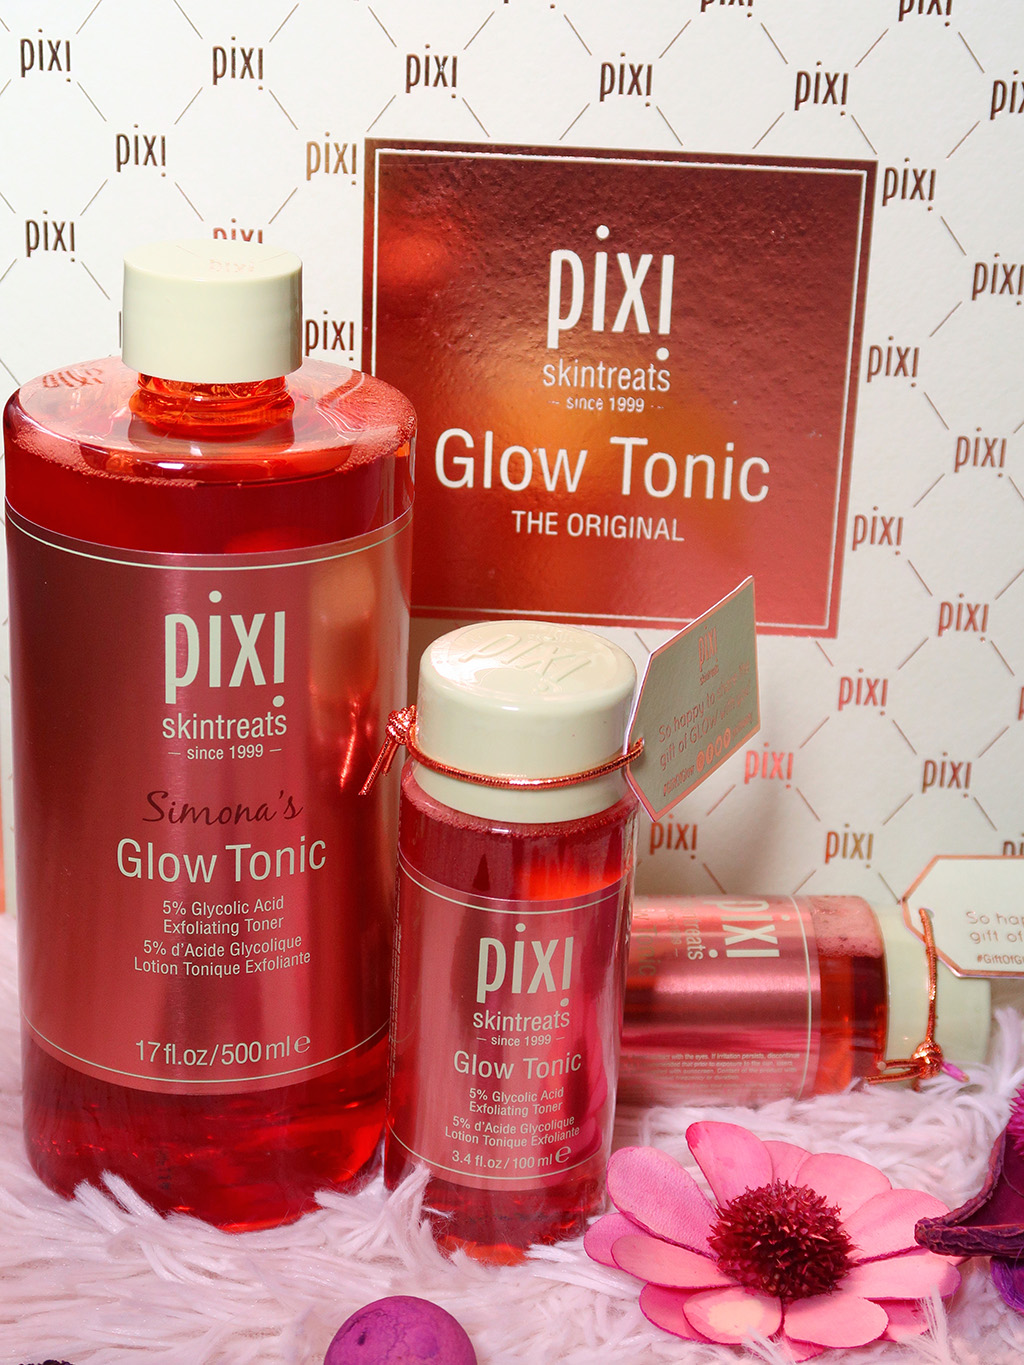 pixi beauty by petra glow tonic pr box